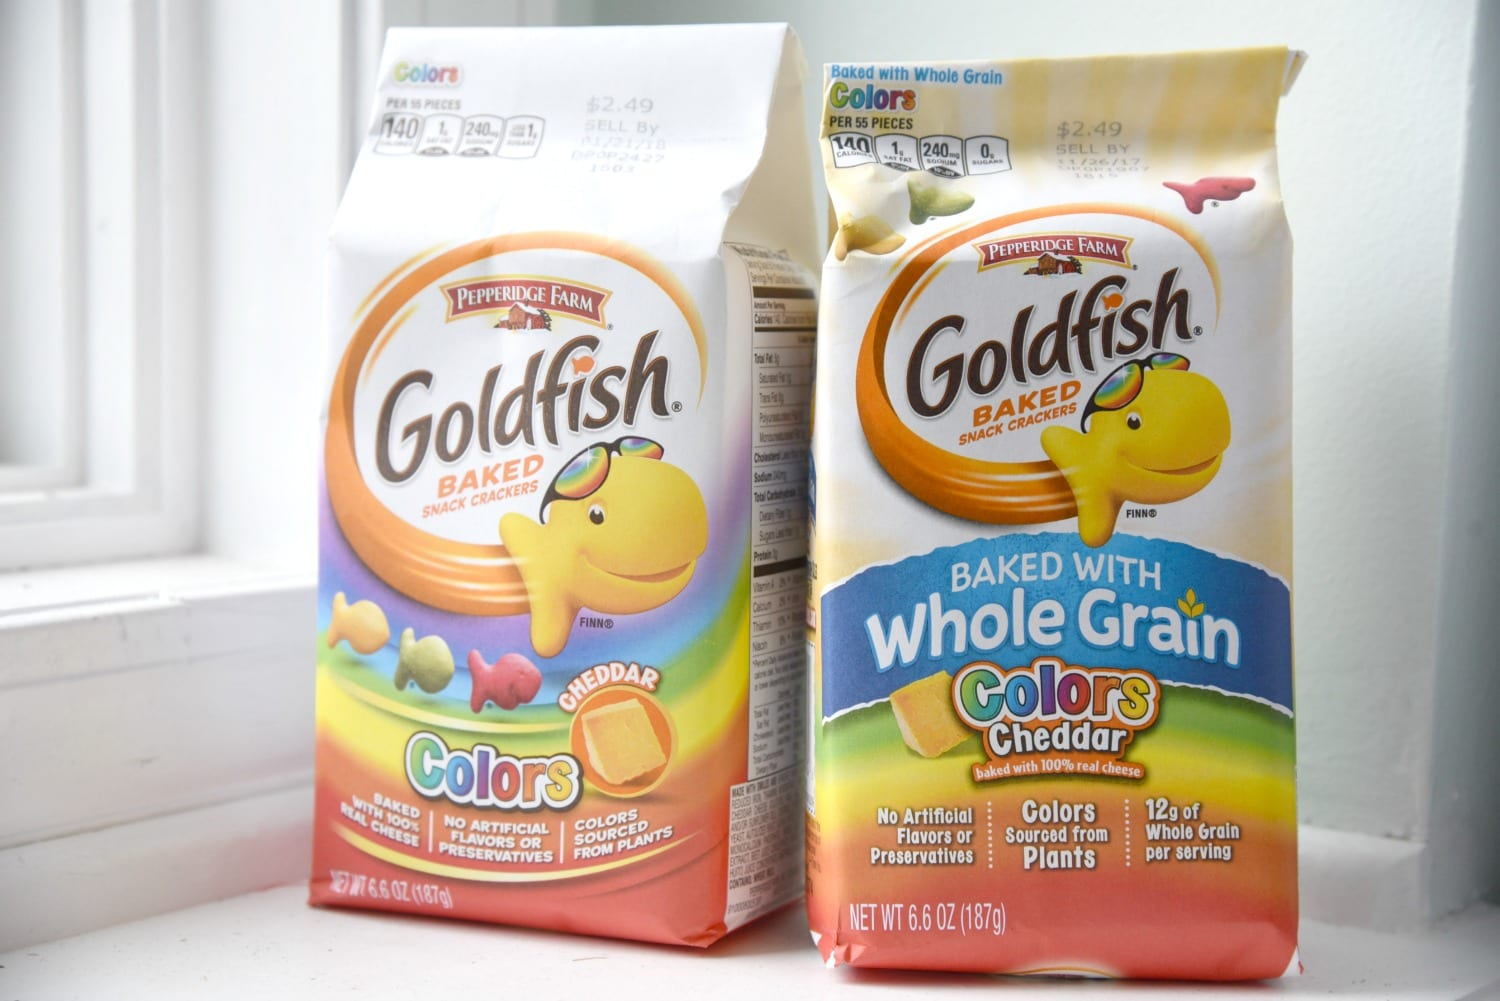 Goldfish Baked Crackers